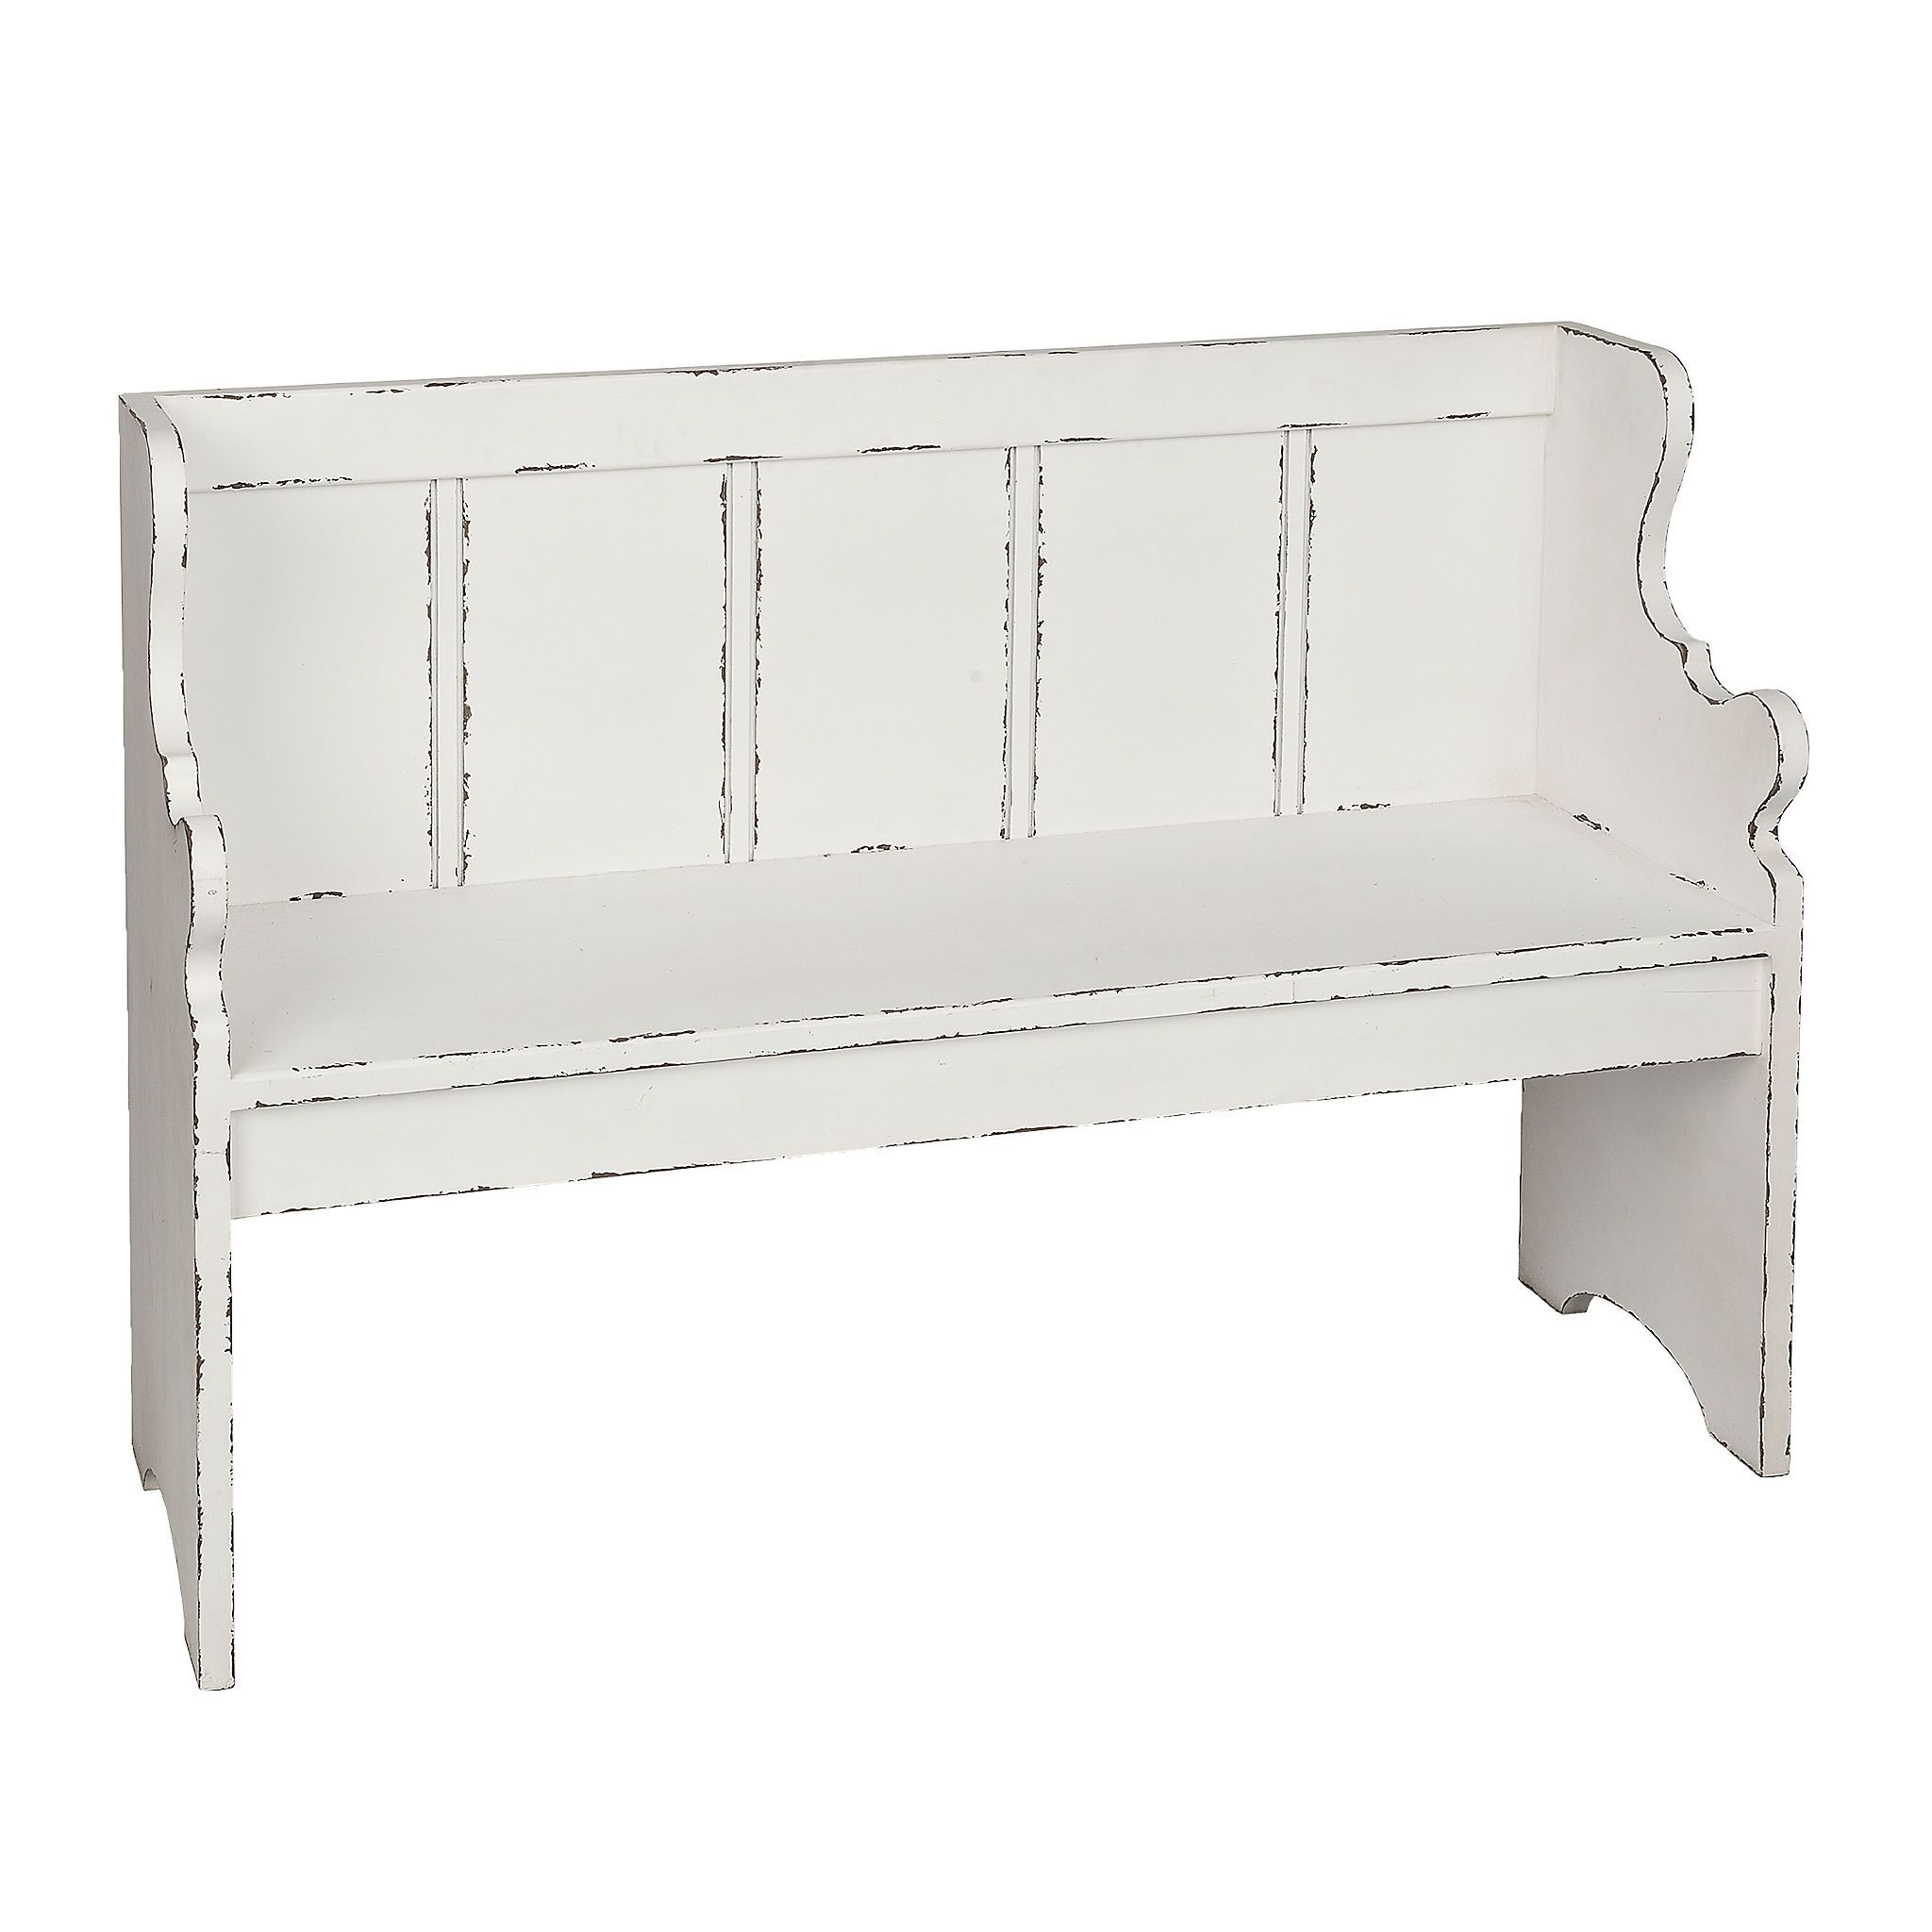 Admirable Product Details Distressed Ivory Pew Bench In 2019 Bench Andrewgaddart Wooden Chair Designs For Living Room Andrewgaddartcom